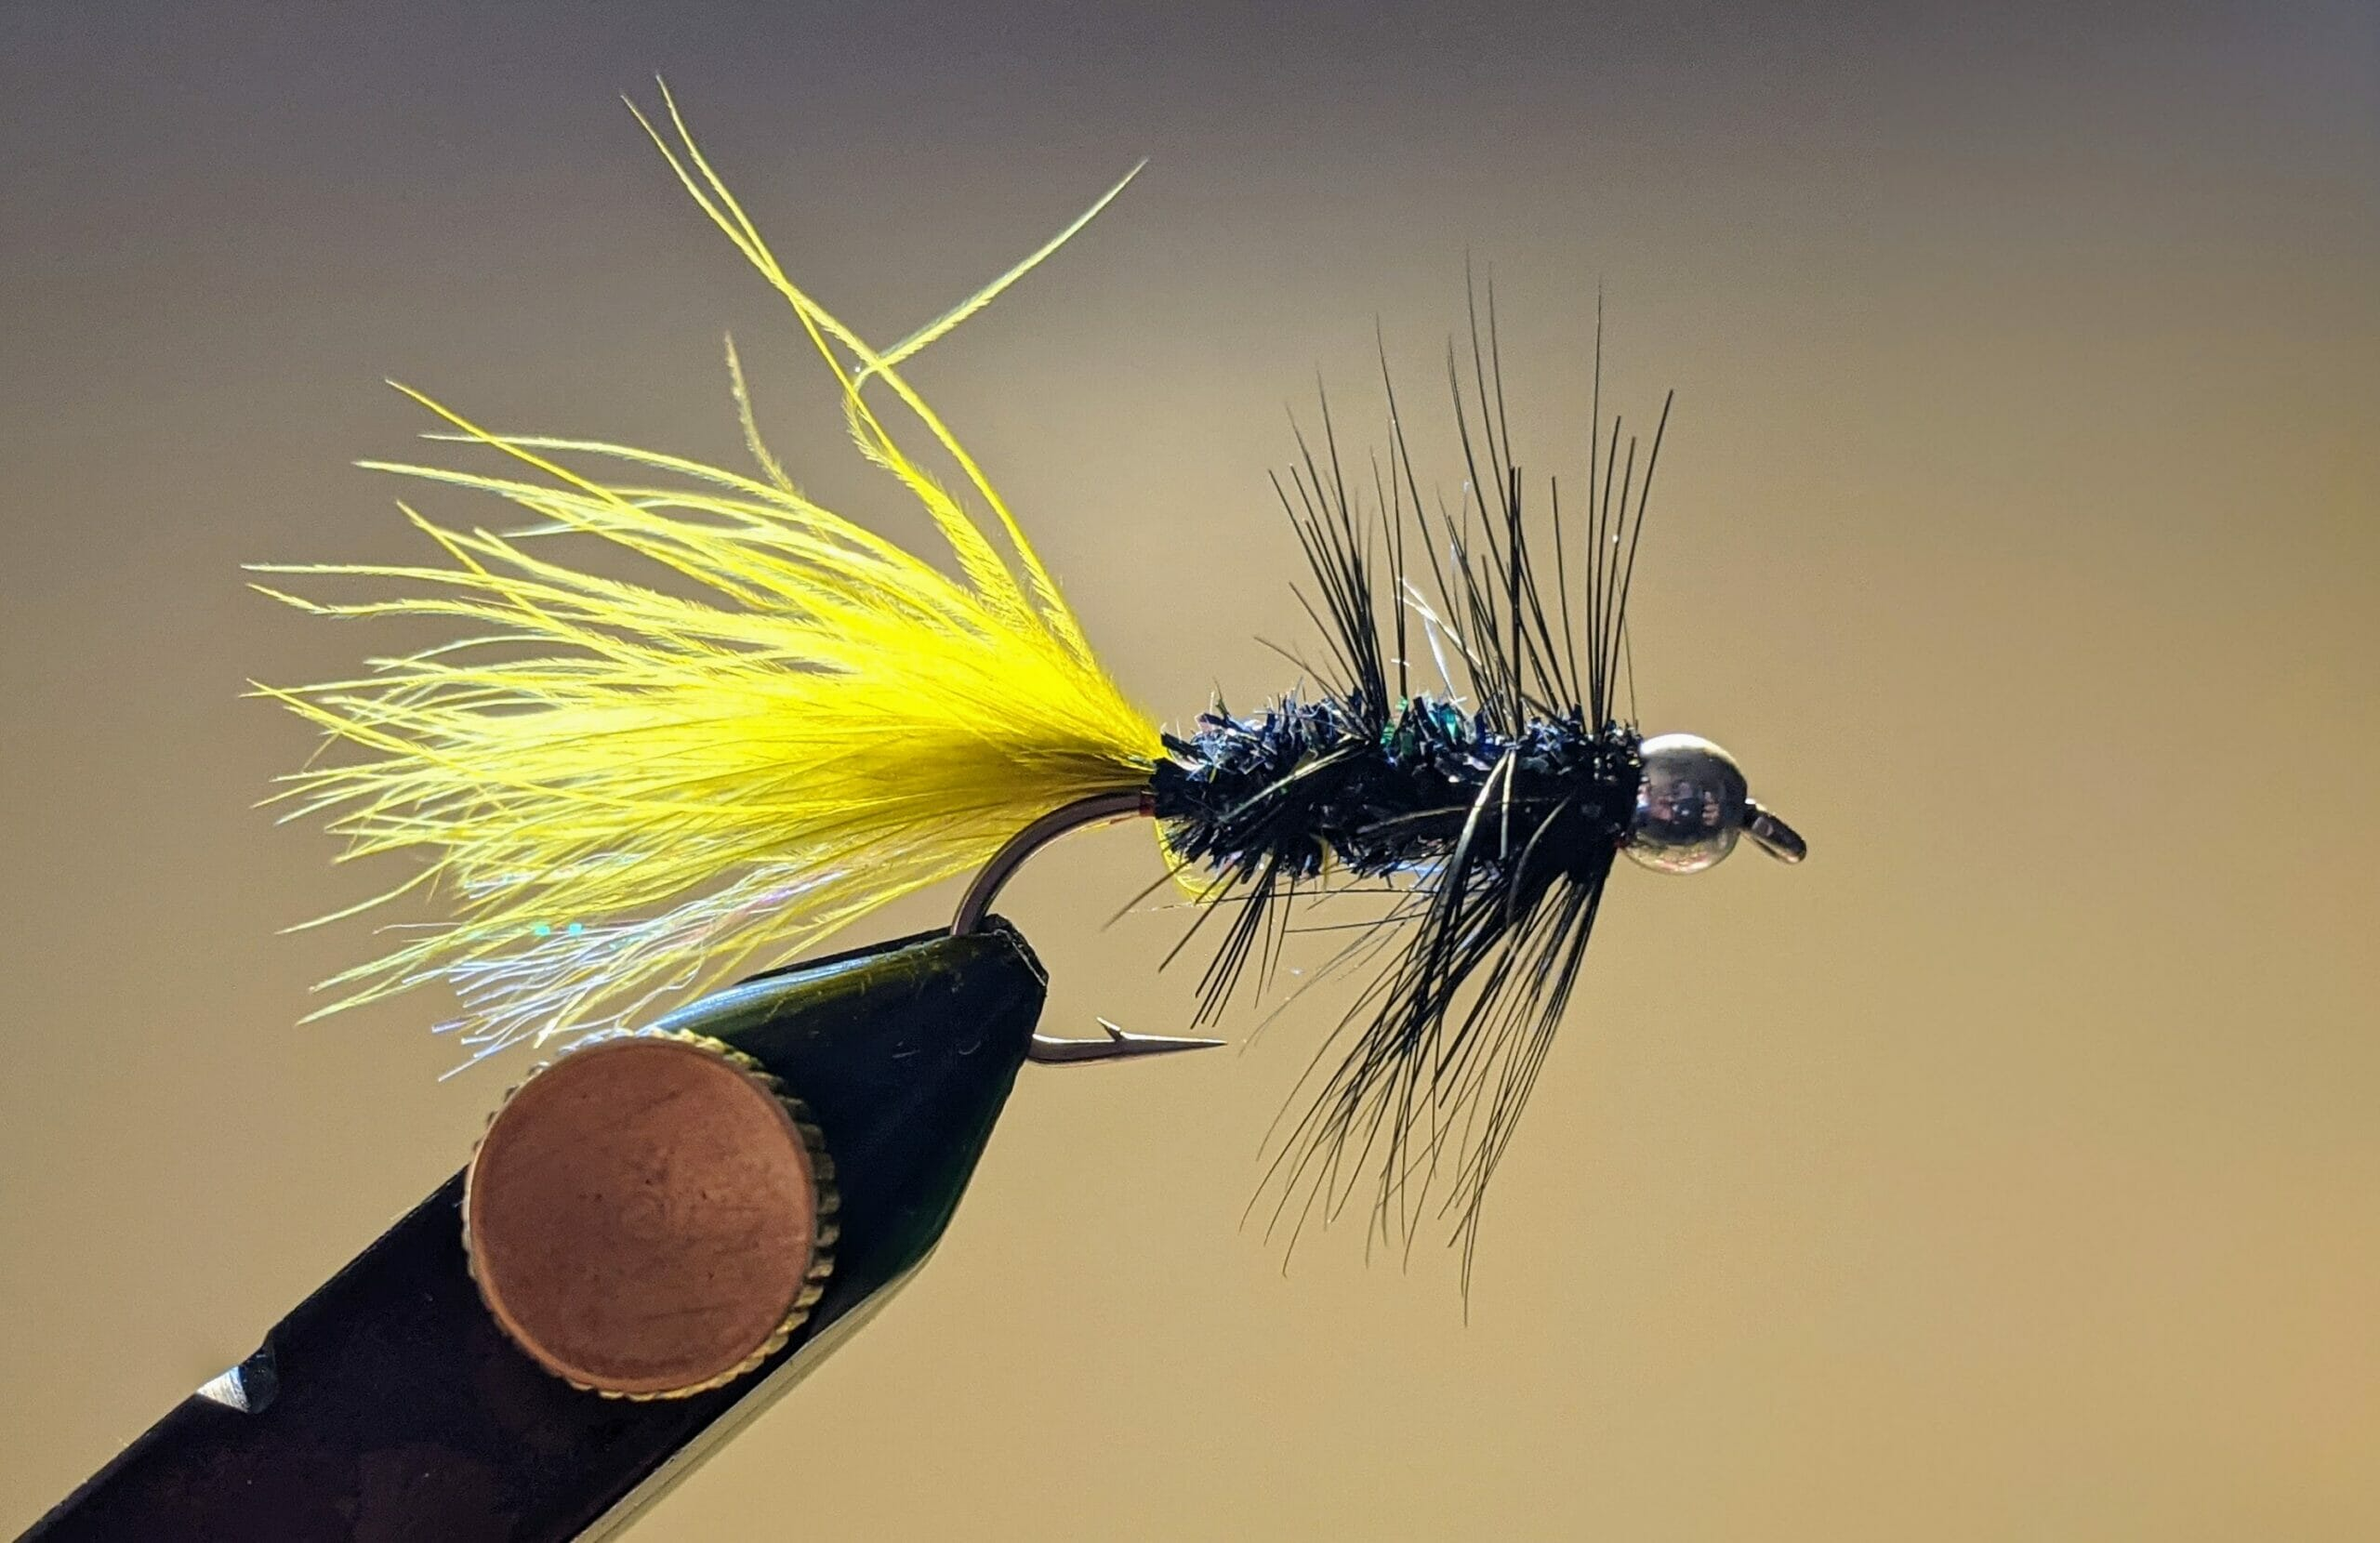 A Woolly Bugger in the vise.